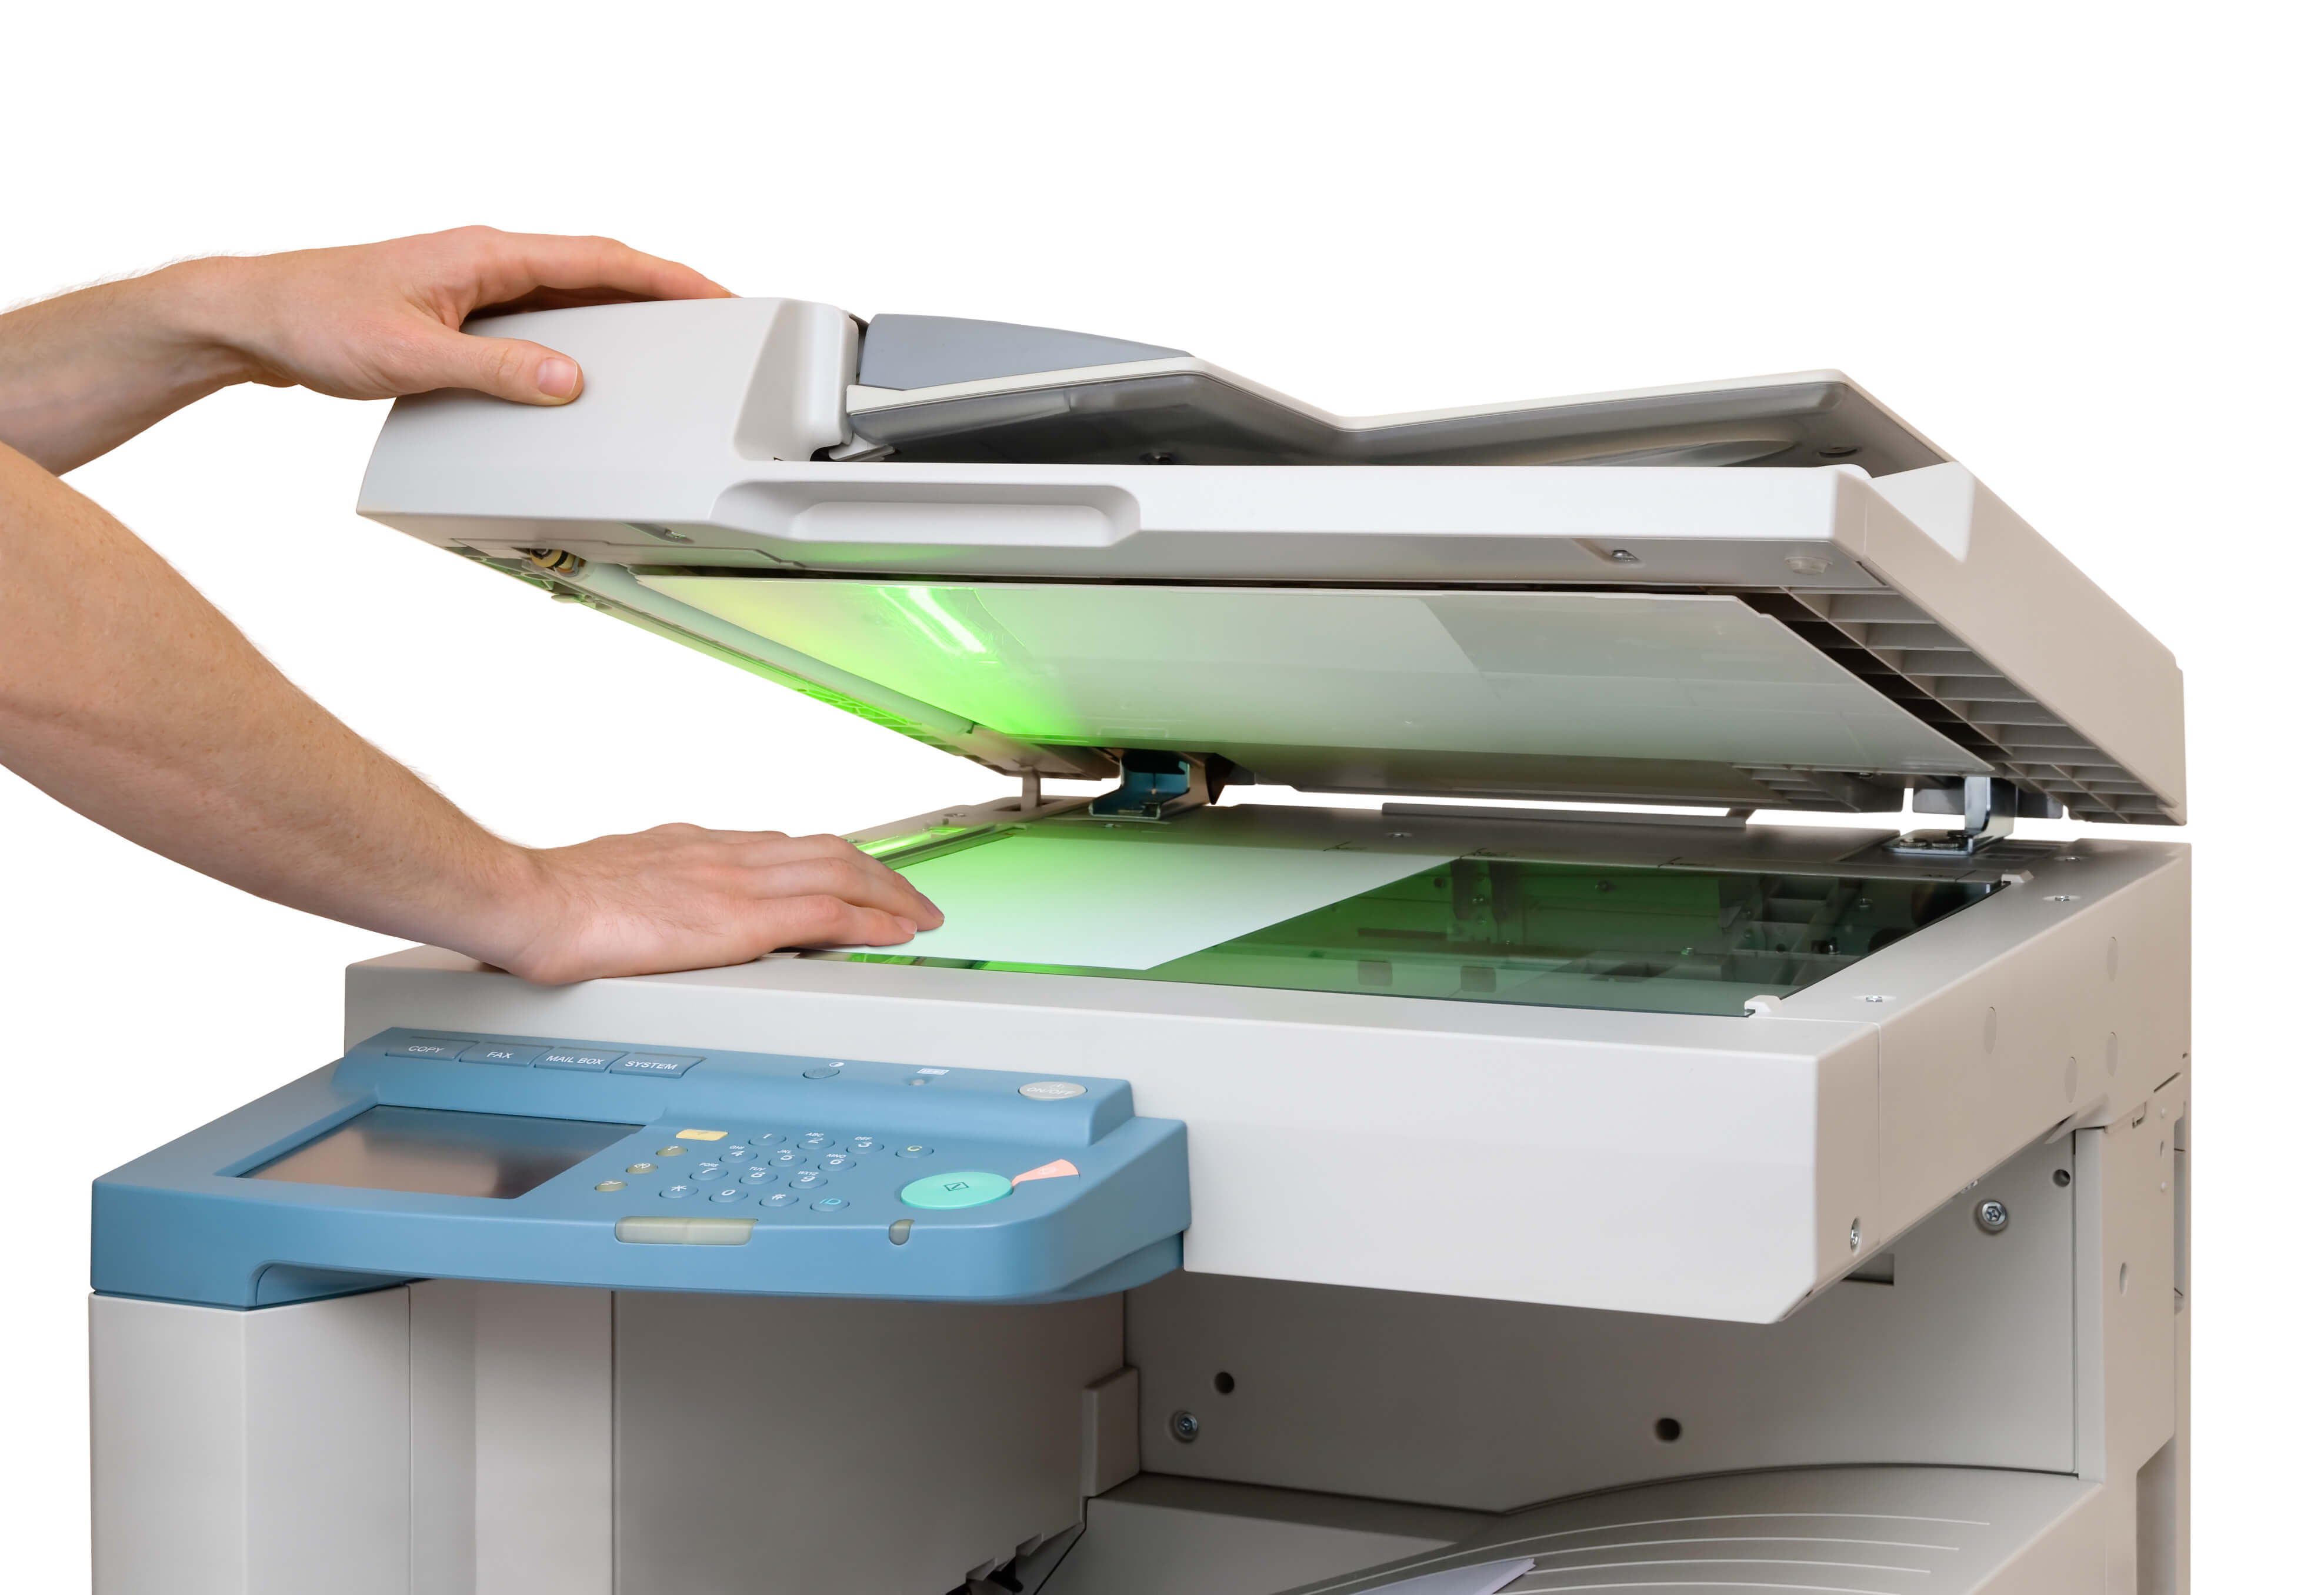 bigstock-Working-With-A-Copier-35835617.jpg